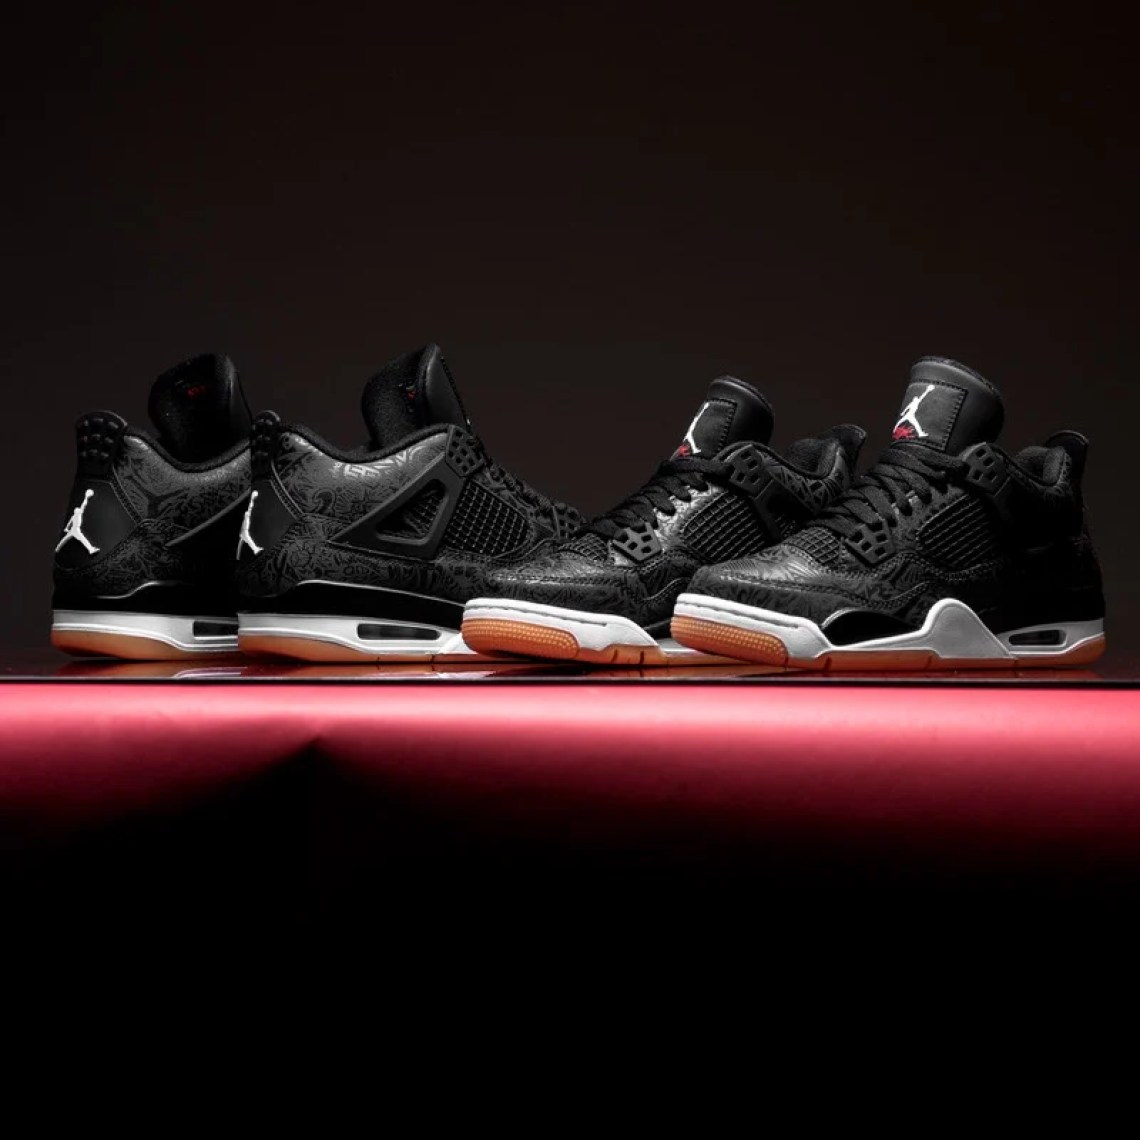 b95de3cd0f4 A first look at the feverish black colorway is revealed today, showcasing a  modern laser pattern matched with customary white and red Jumpman logo and  ...